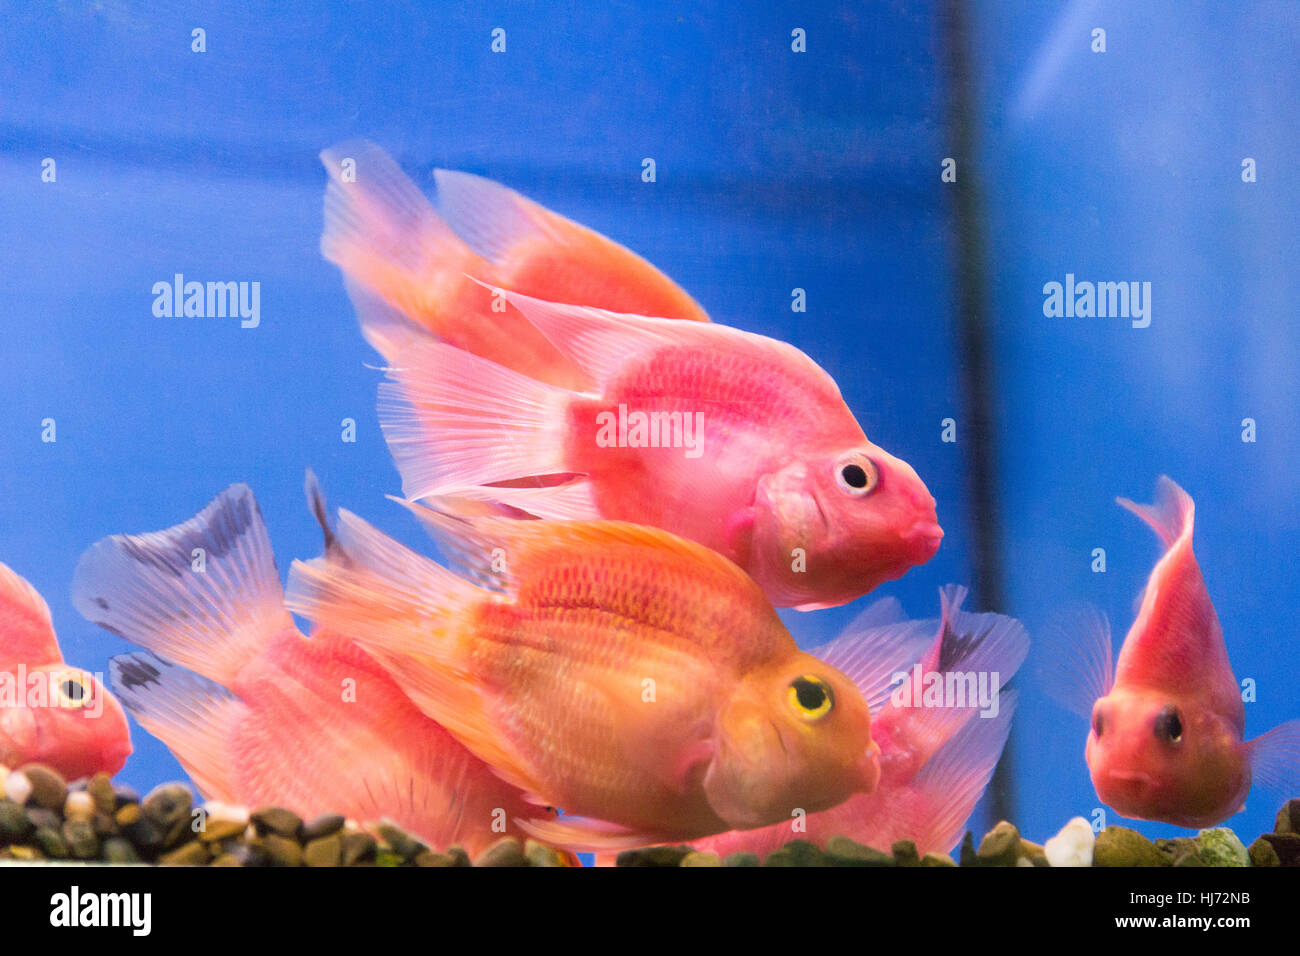 Photo of aquarium fish parrot cichlid in freshwater stock for Parrot fish freshwater